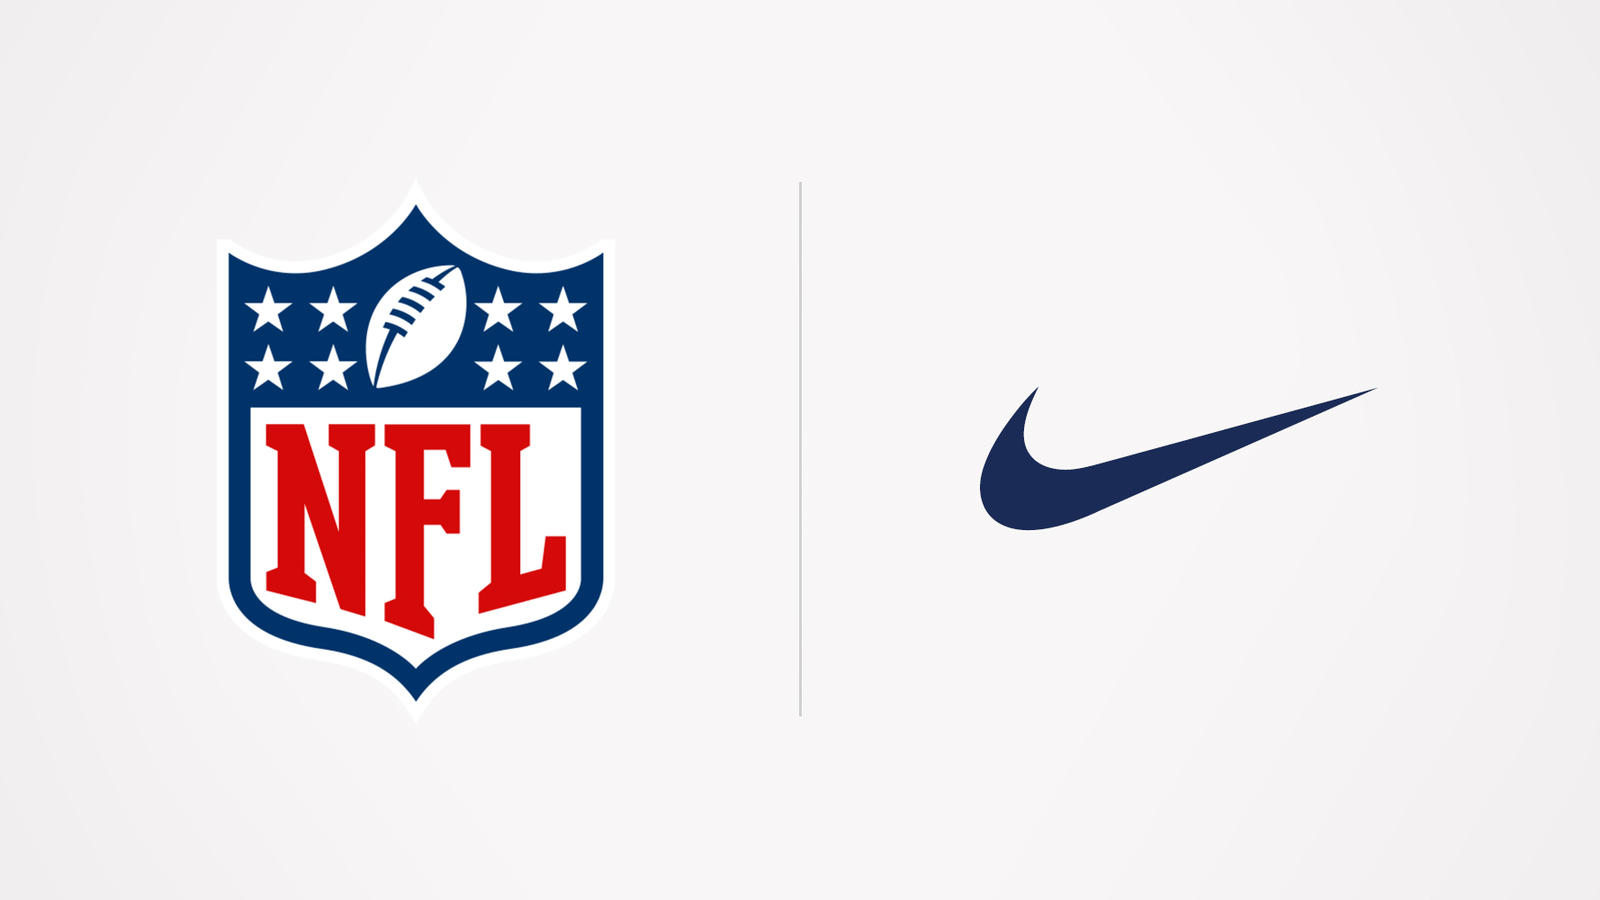 Nike x NFL Partnership Girls Flag Football 5 million dollar grant initiative 4